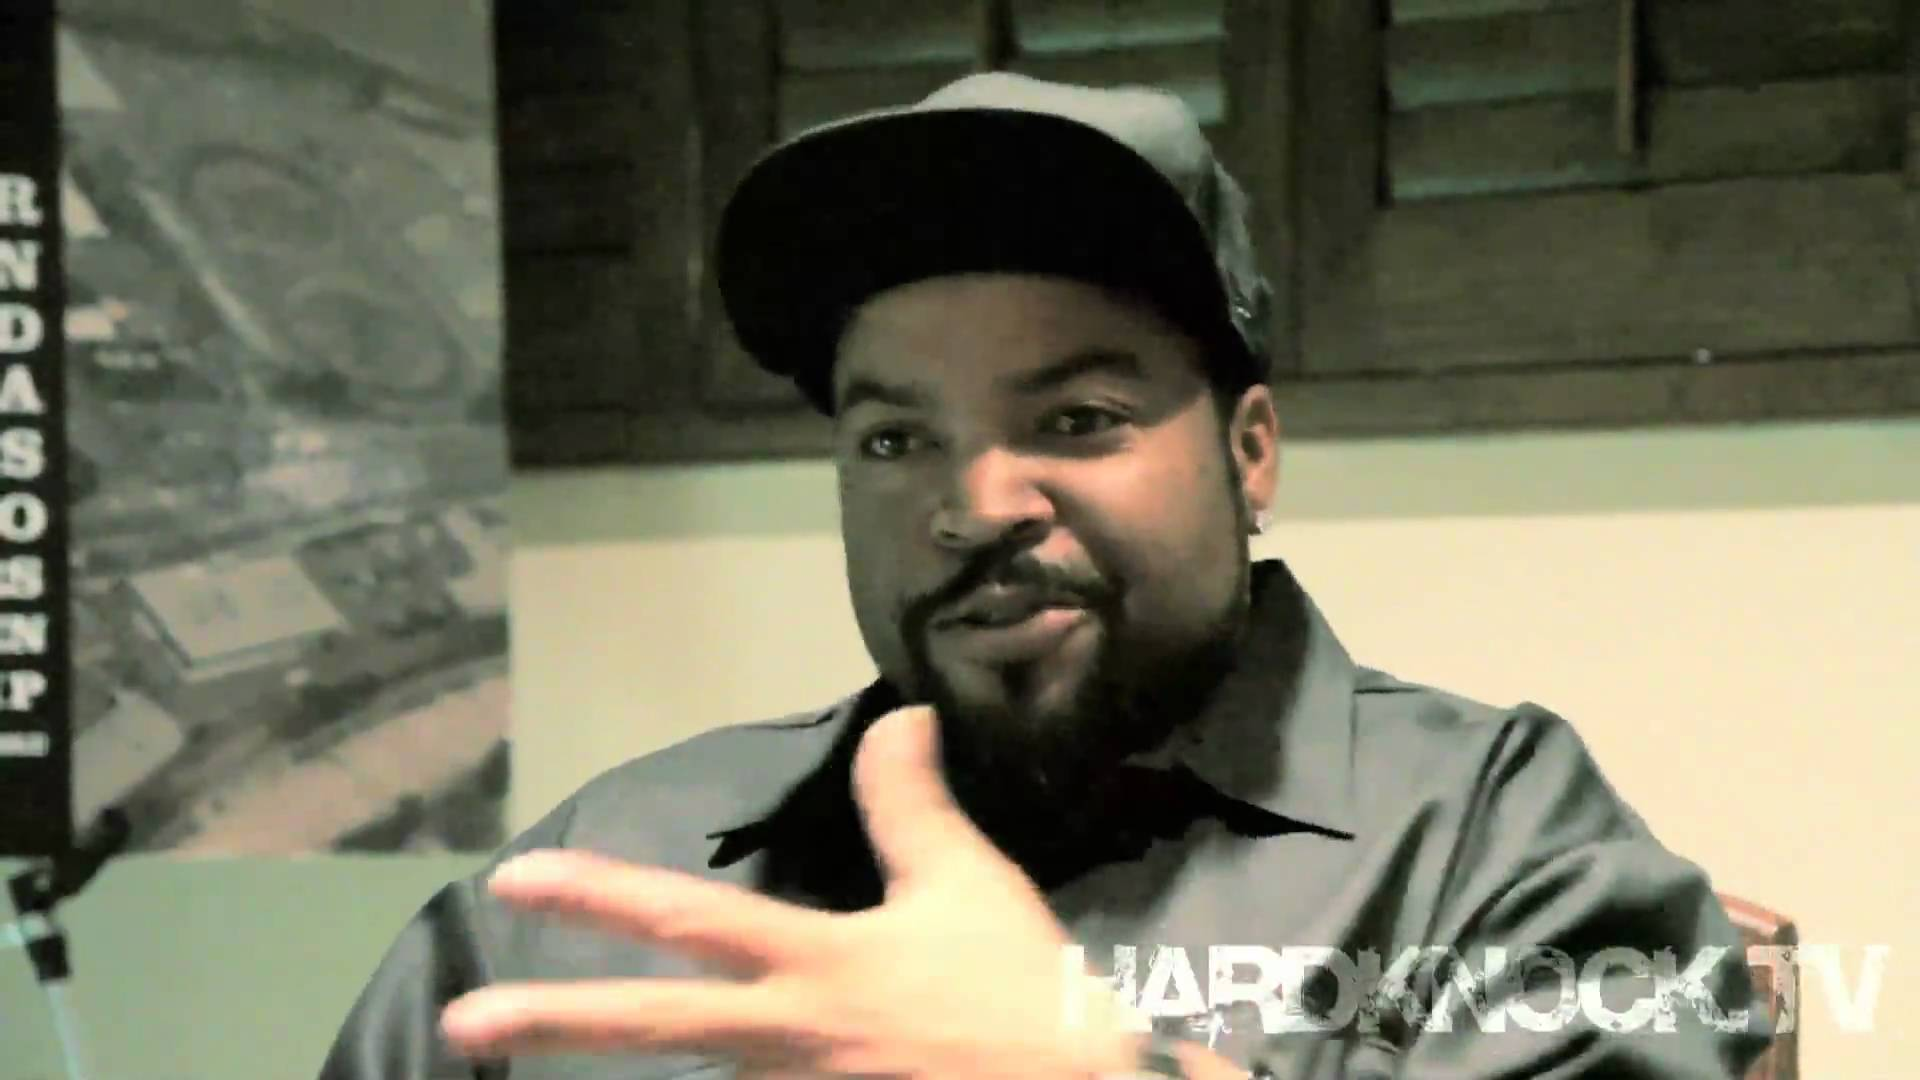 Ice Cube I Am The West, Talks New Album, Black and Brown relations interview by Nick Huff Barili